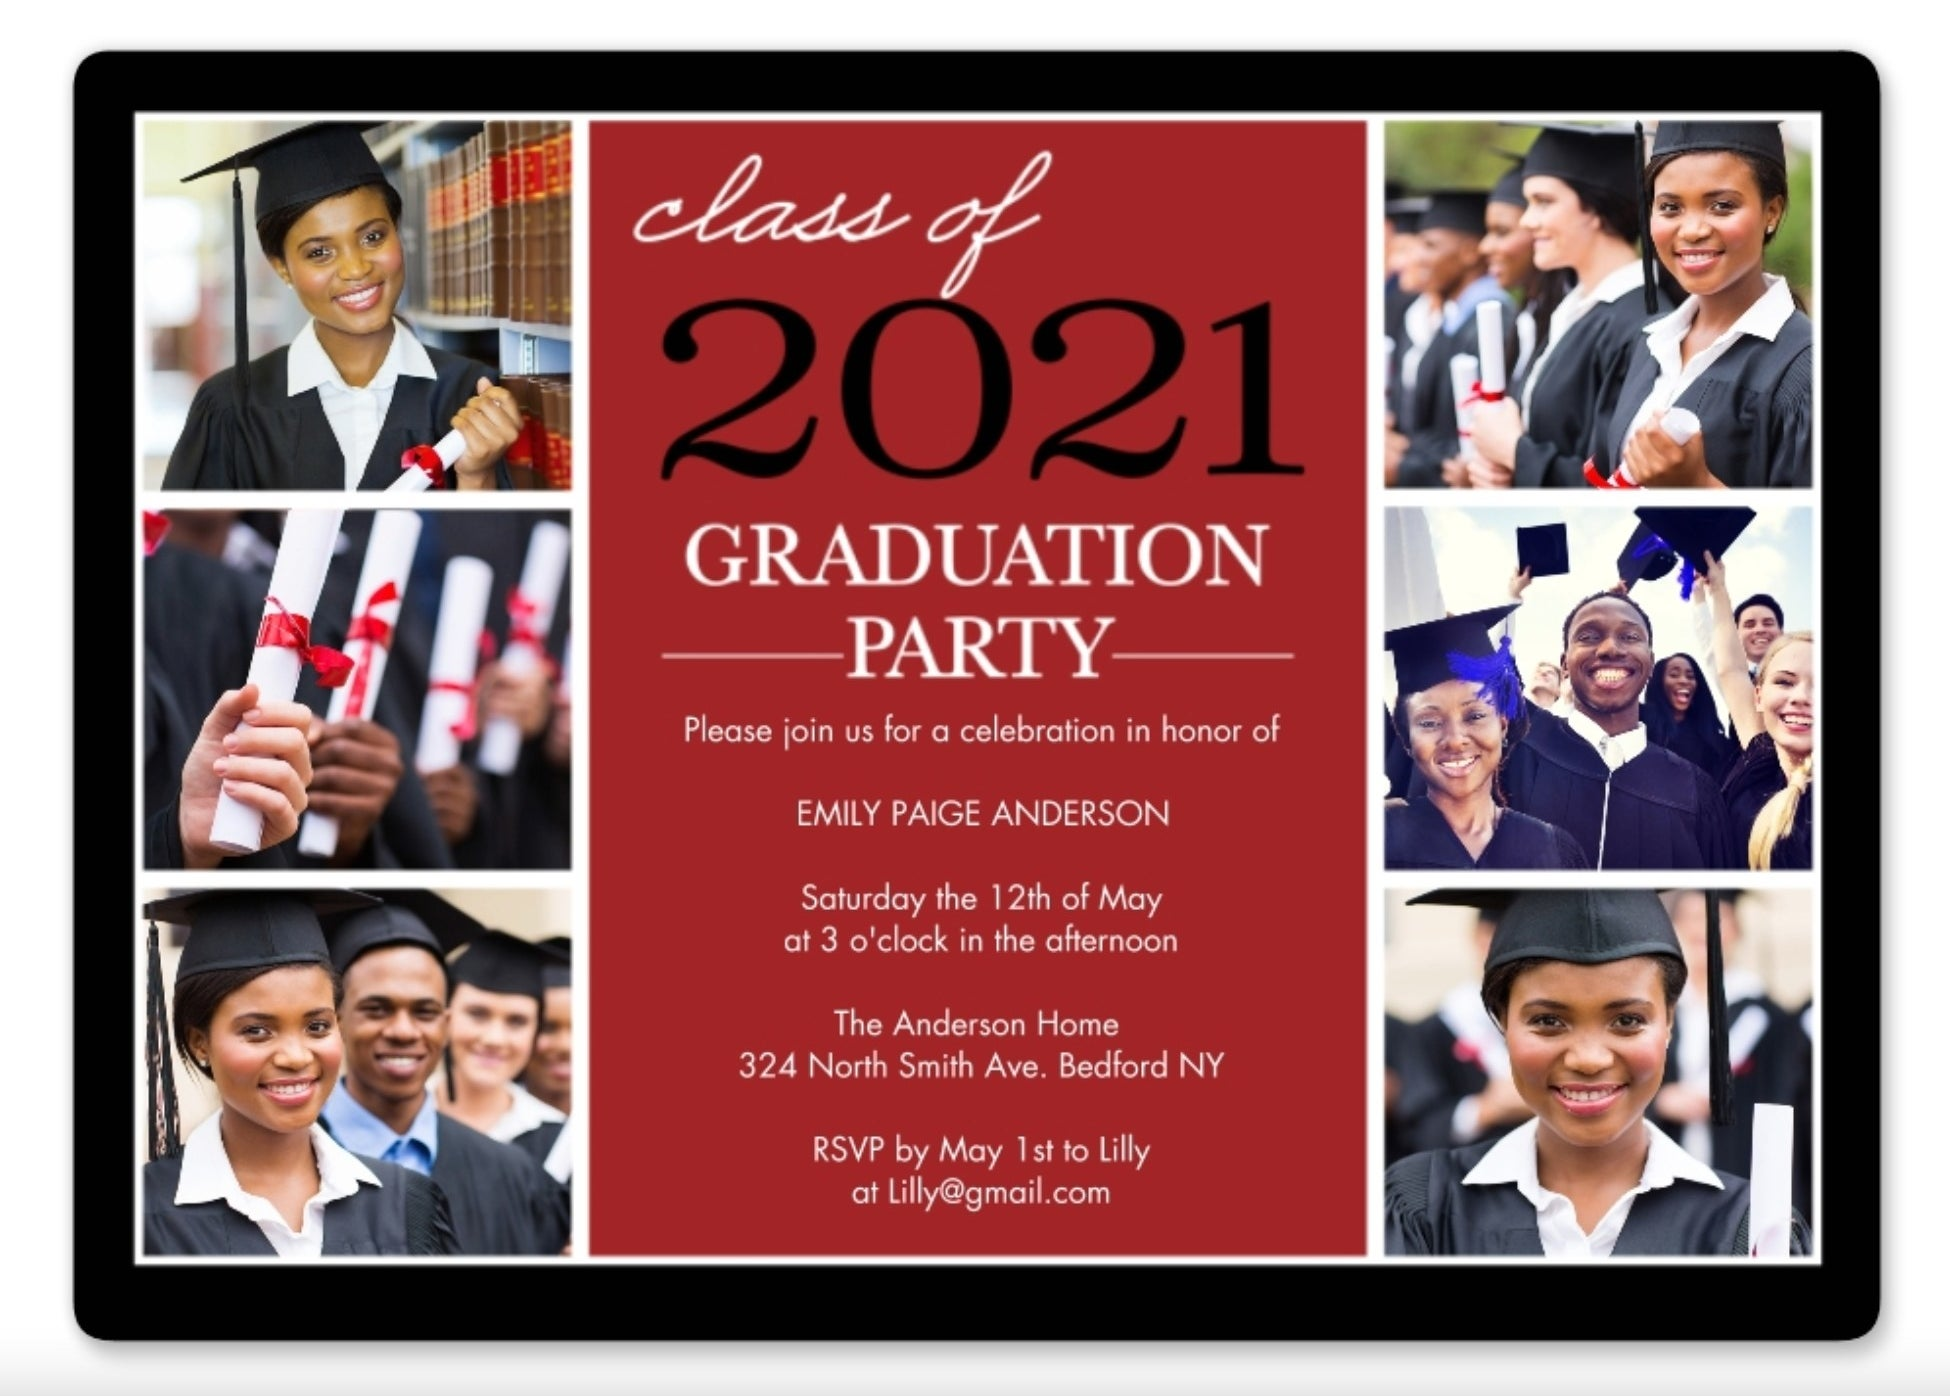 The graduation invite in red, white, and black font